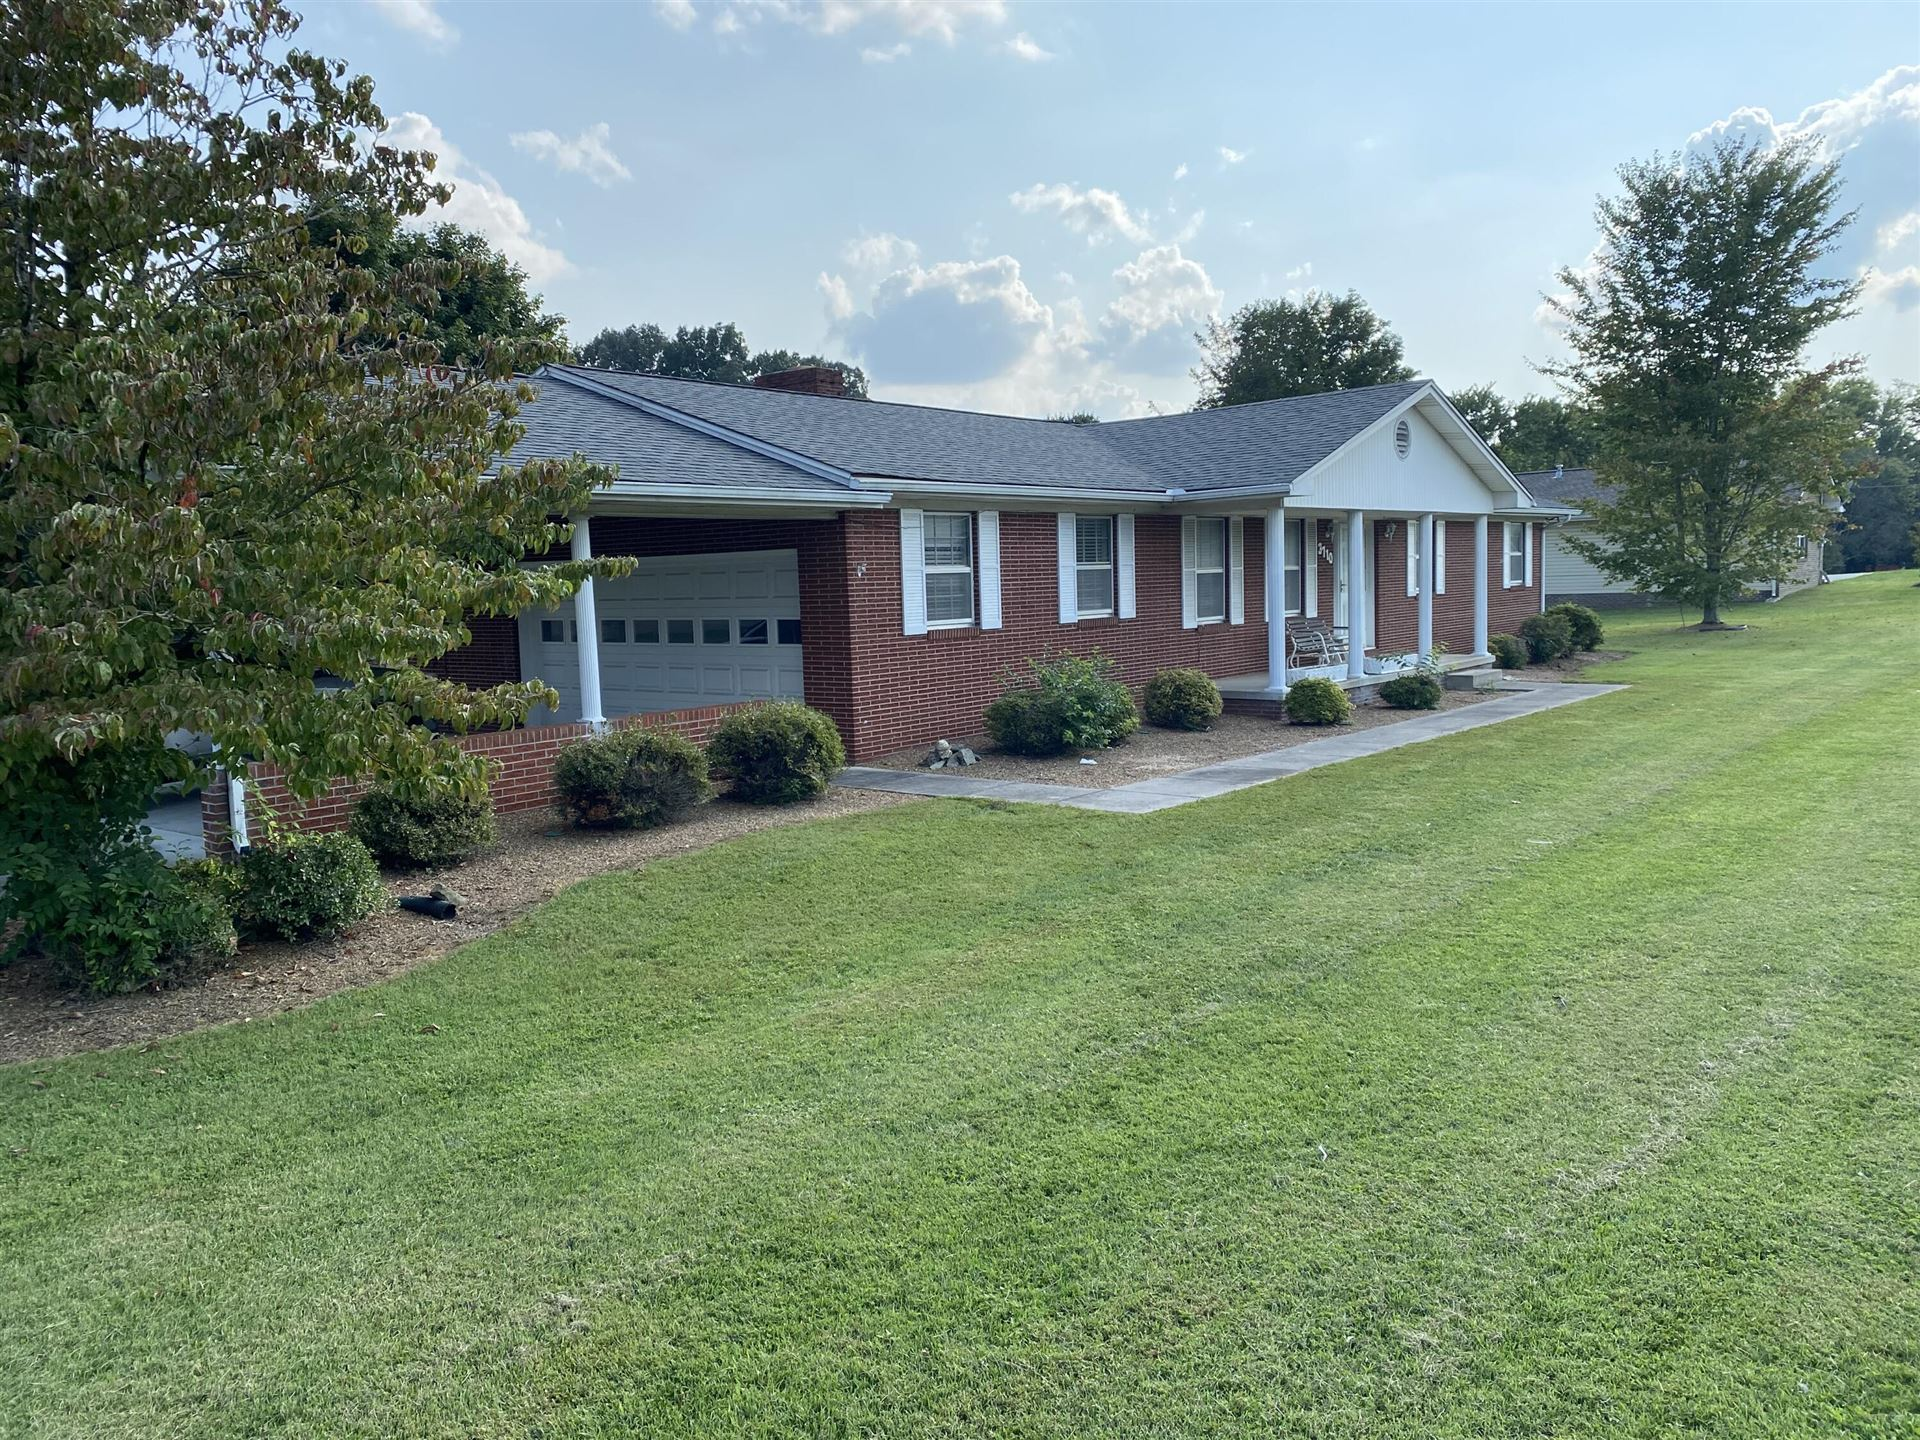 Photo of 3710 E Emory Rd, Knoxville, TN 37938 (MLS # 1167675)